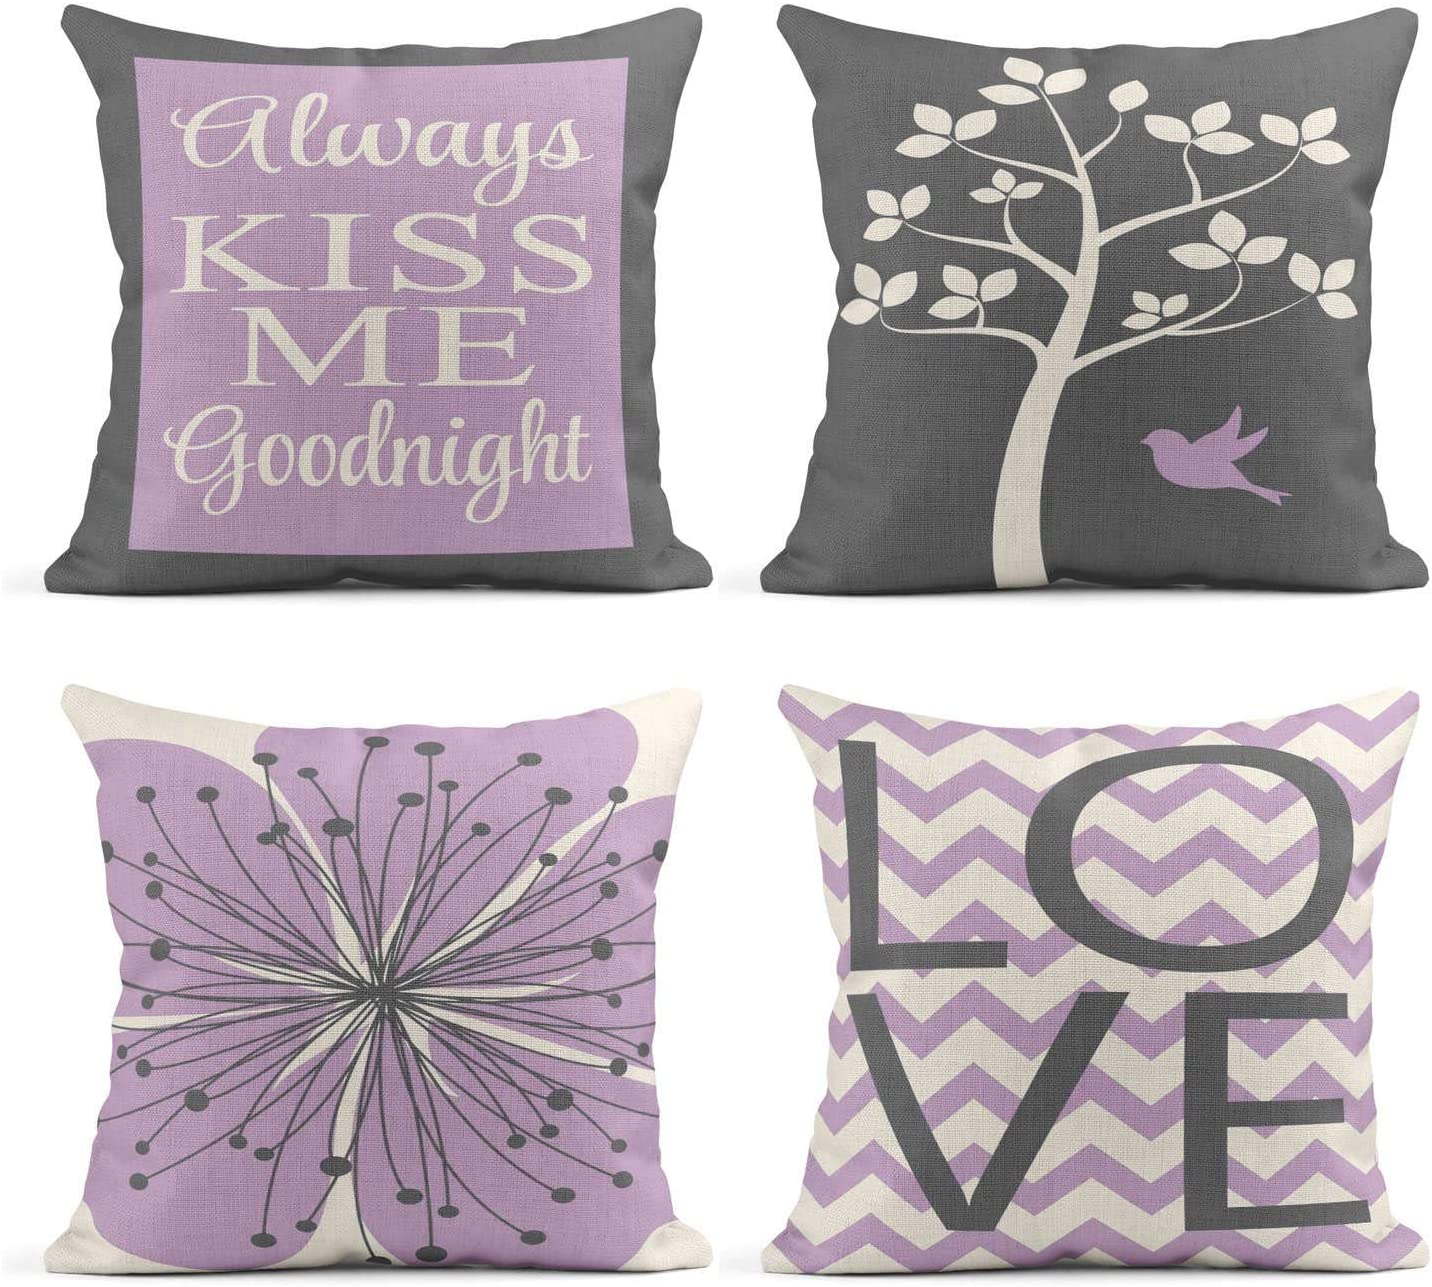 Tarolo Set of 4 Linen Throw Pillow Cover Case Always Kiss Me Goodnight Tree Love Children's Art Decorative Pillow Cases Covers Home Decor Square 20 x 20 Inches Pillowcases